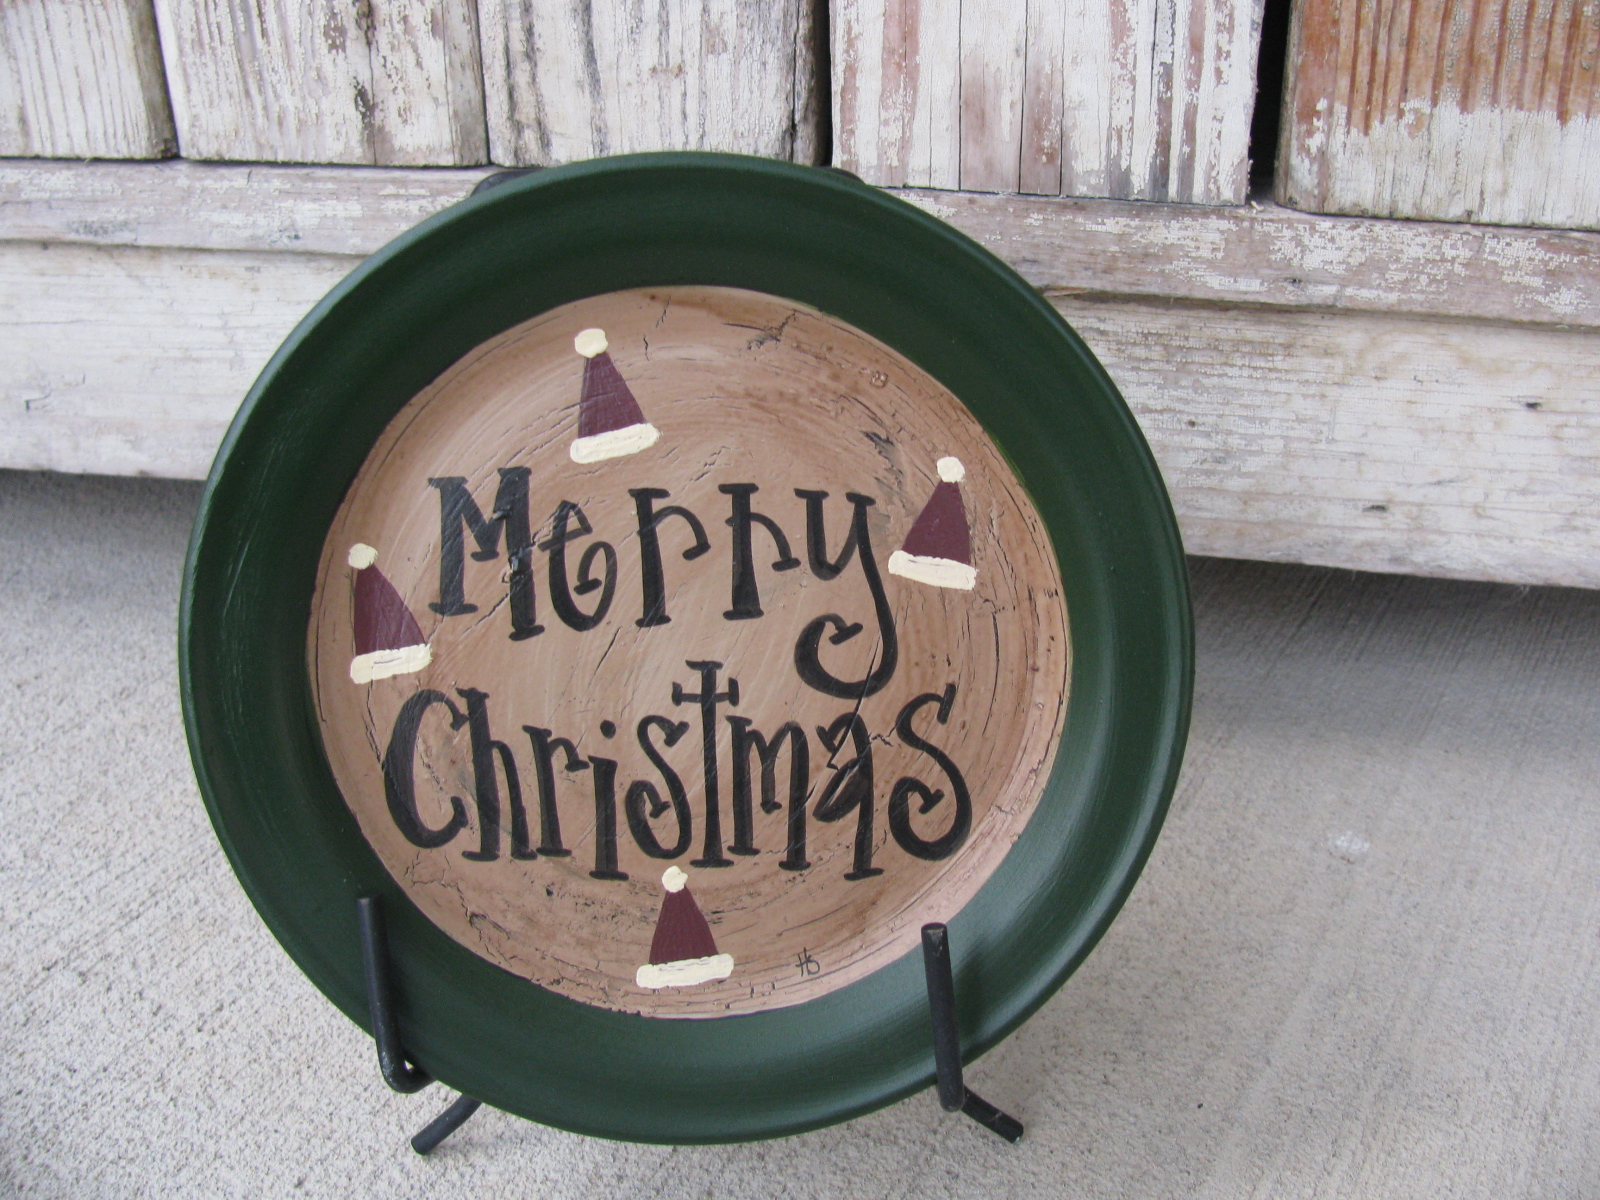 Home u003e Winter Country Crafts u003e Primitive Country Christmas Holiday Santa Claus Hats Mini Word Hand Painted Decorative Plate & Primitive Country Christmas Holiday Santa Claus Hats Mini Word Hand ...